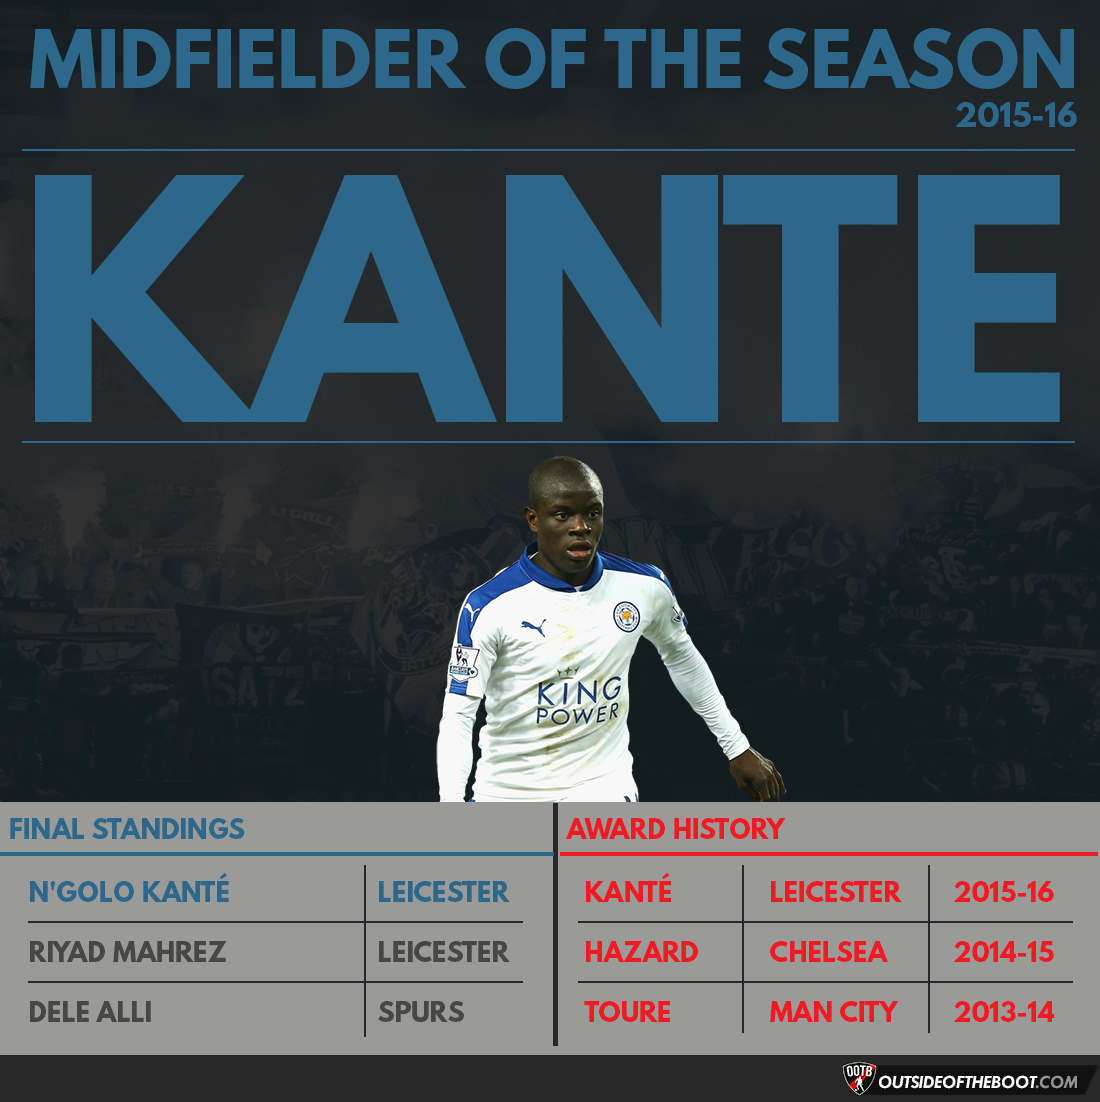 Premier League Midfielder of the Season 2015-16